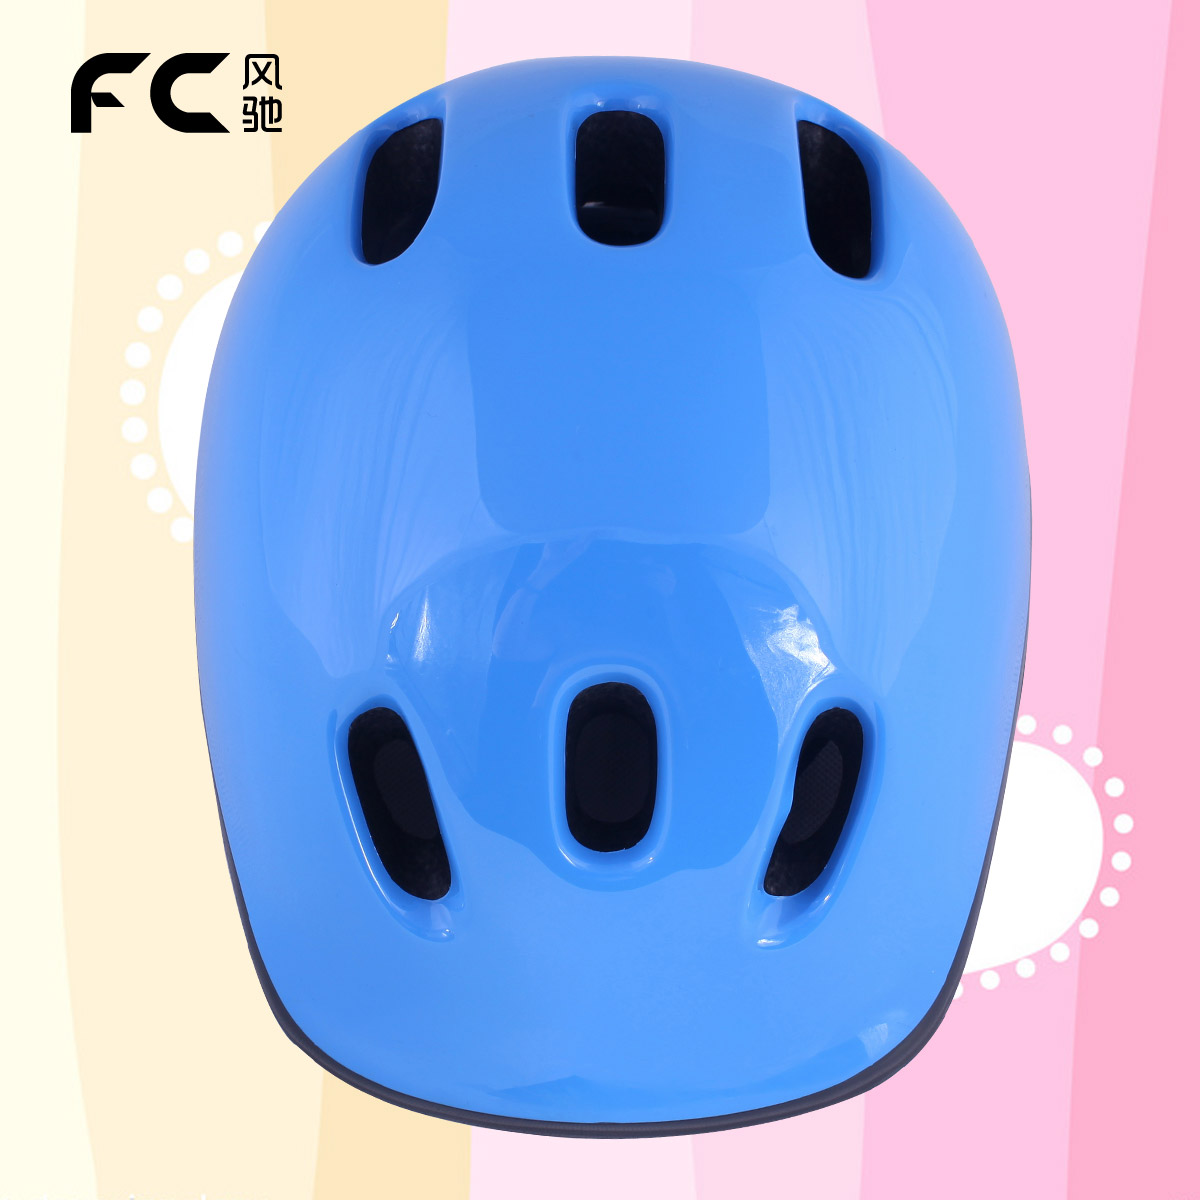 Fc child helmet pulley skateboard safety bicycle roller skating protective gear blue - Professional Outdoor sport products store